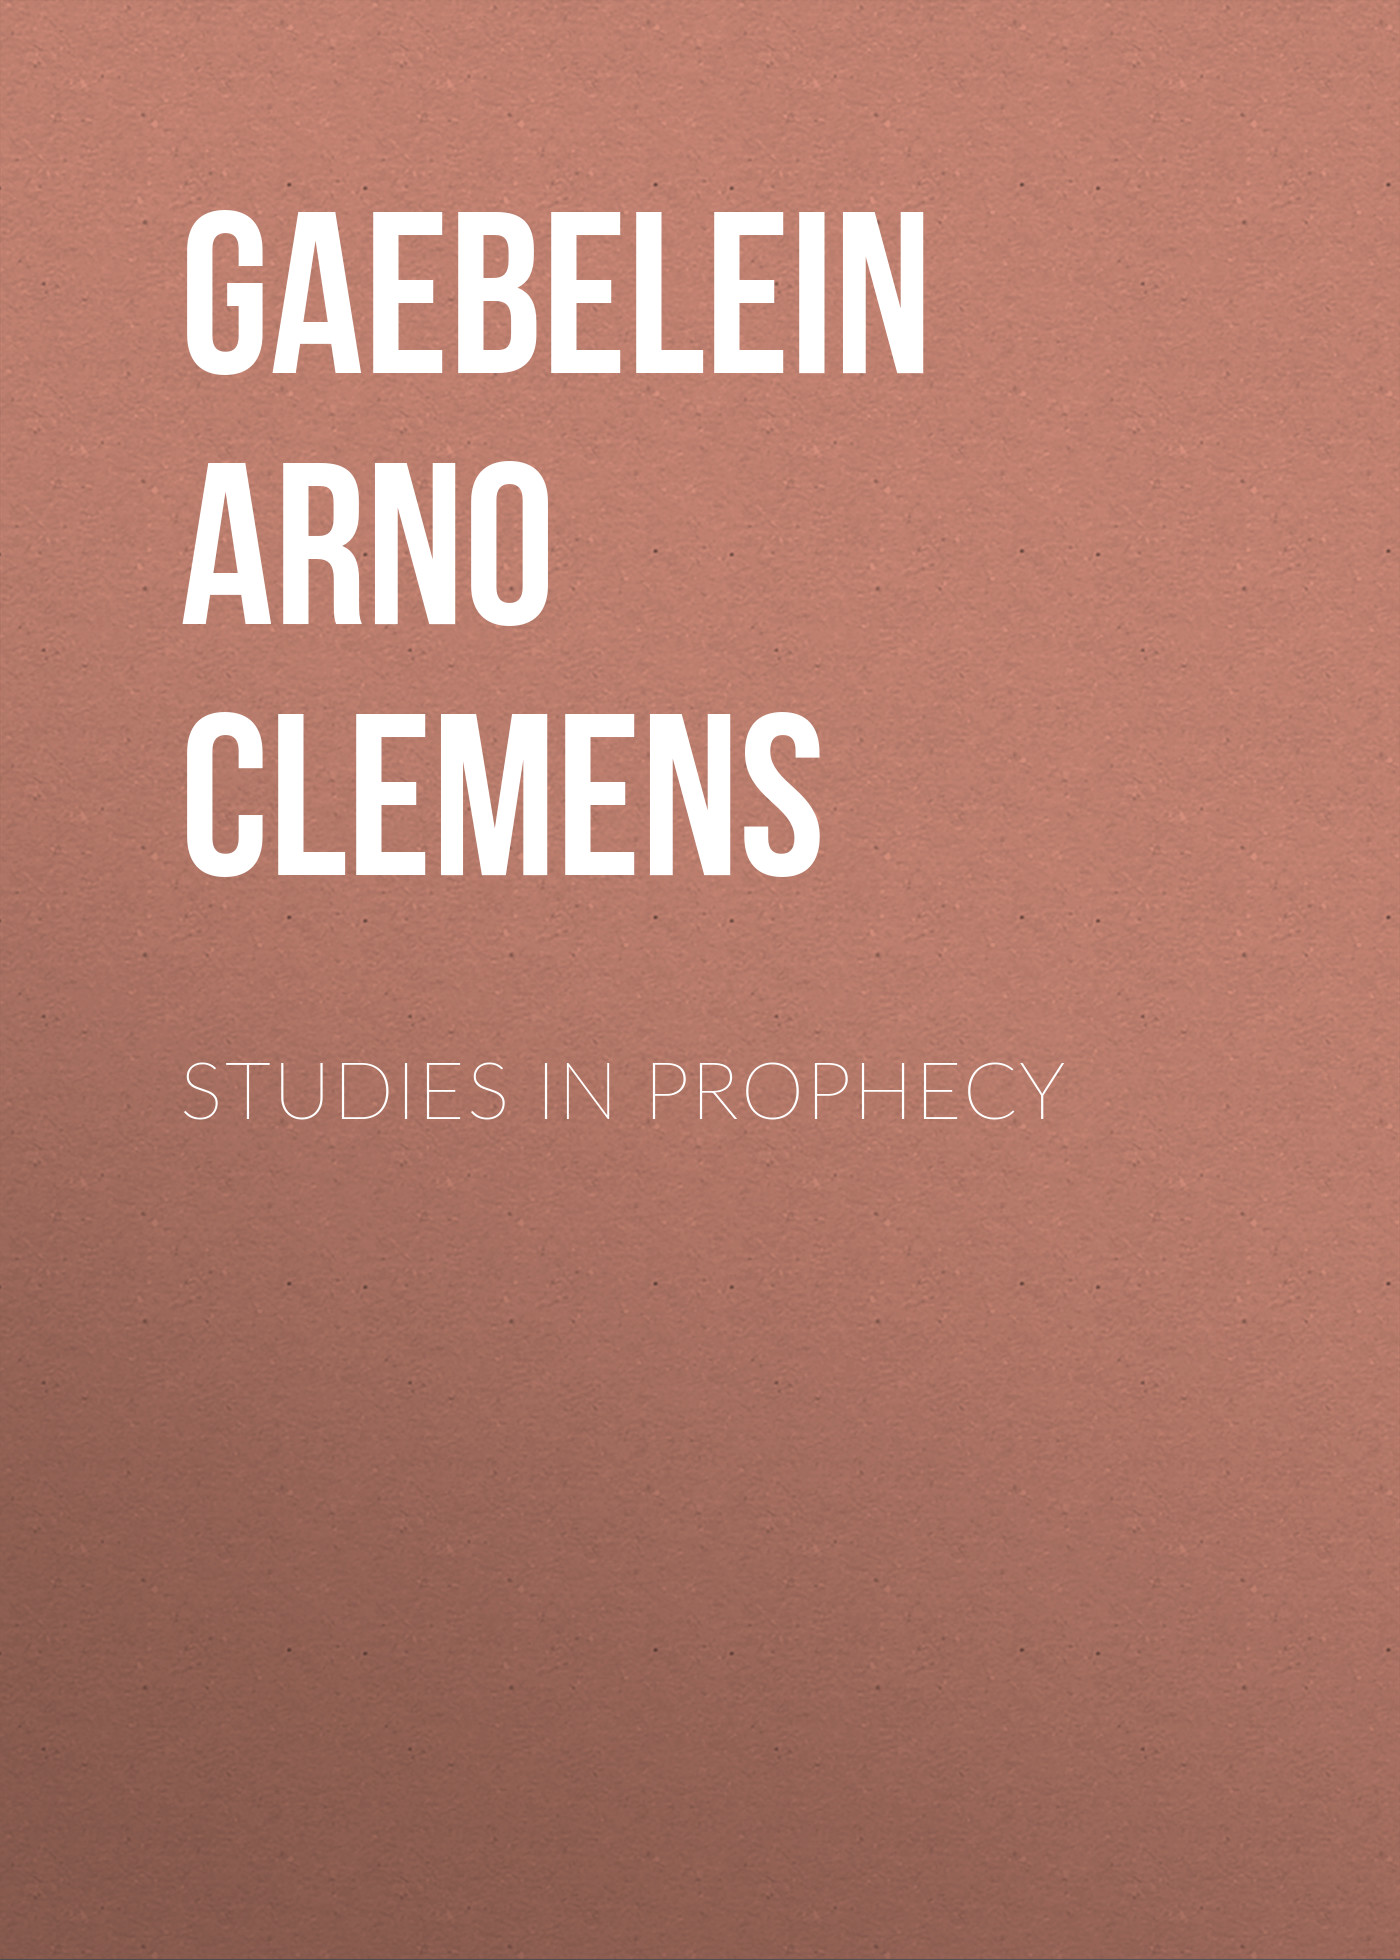 Gaebelein Arno Clemens Studies in Prophecy